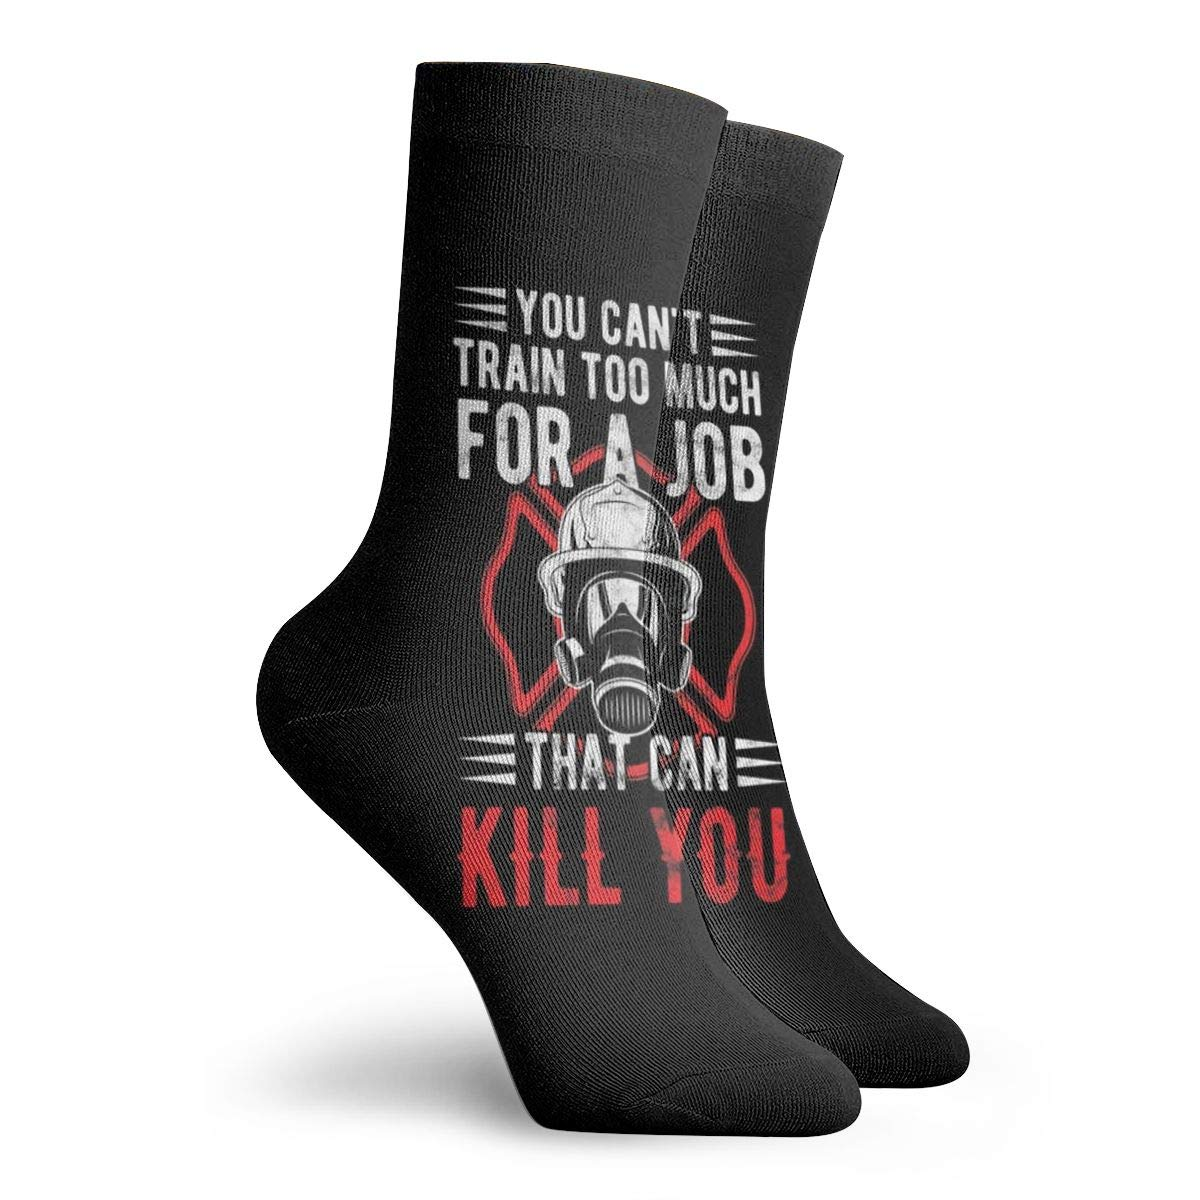 Cotton Crew Socks For Men Women Casual Socks With Retro Firefighter Fireman Quote Print